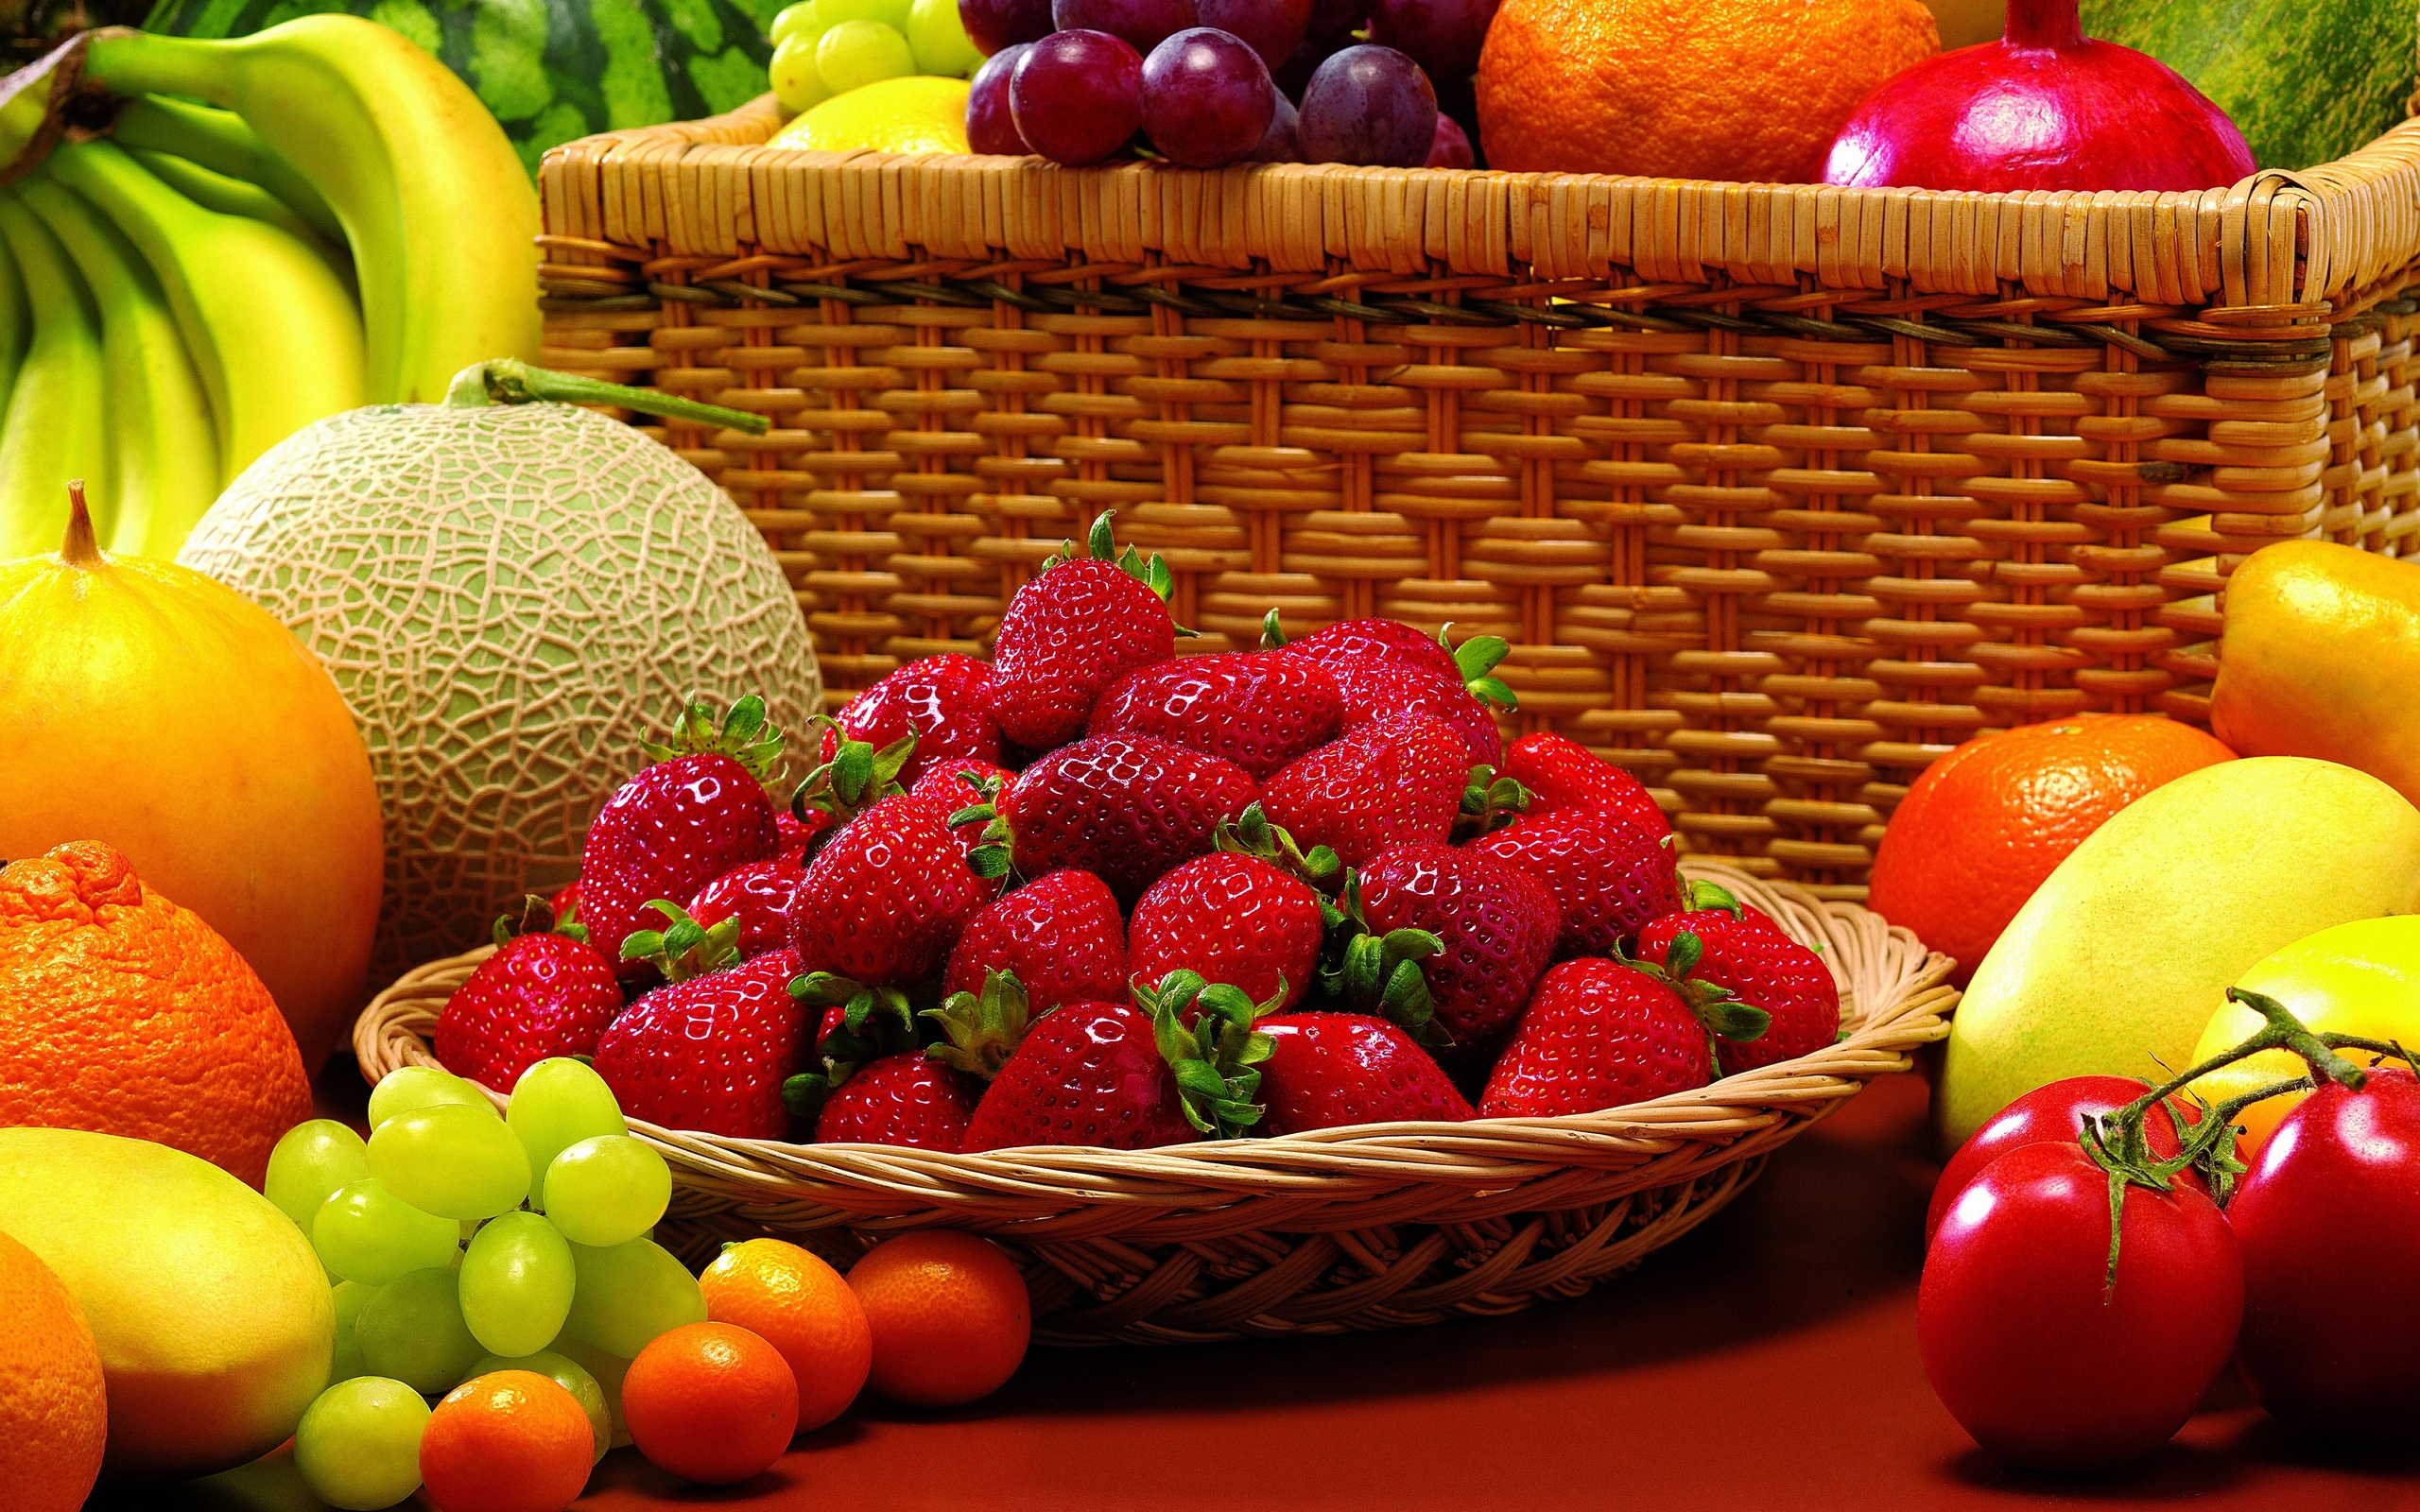 fruit wallpaper hd 47796